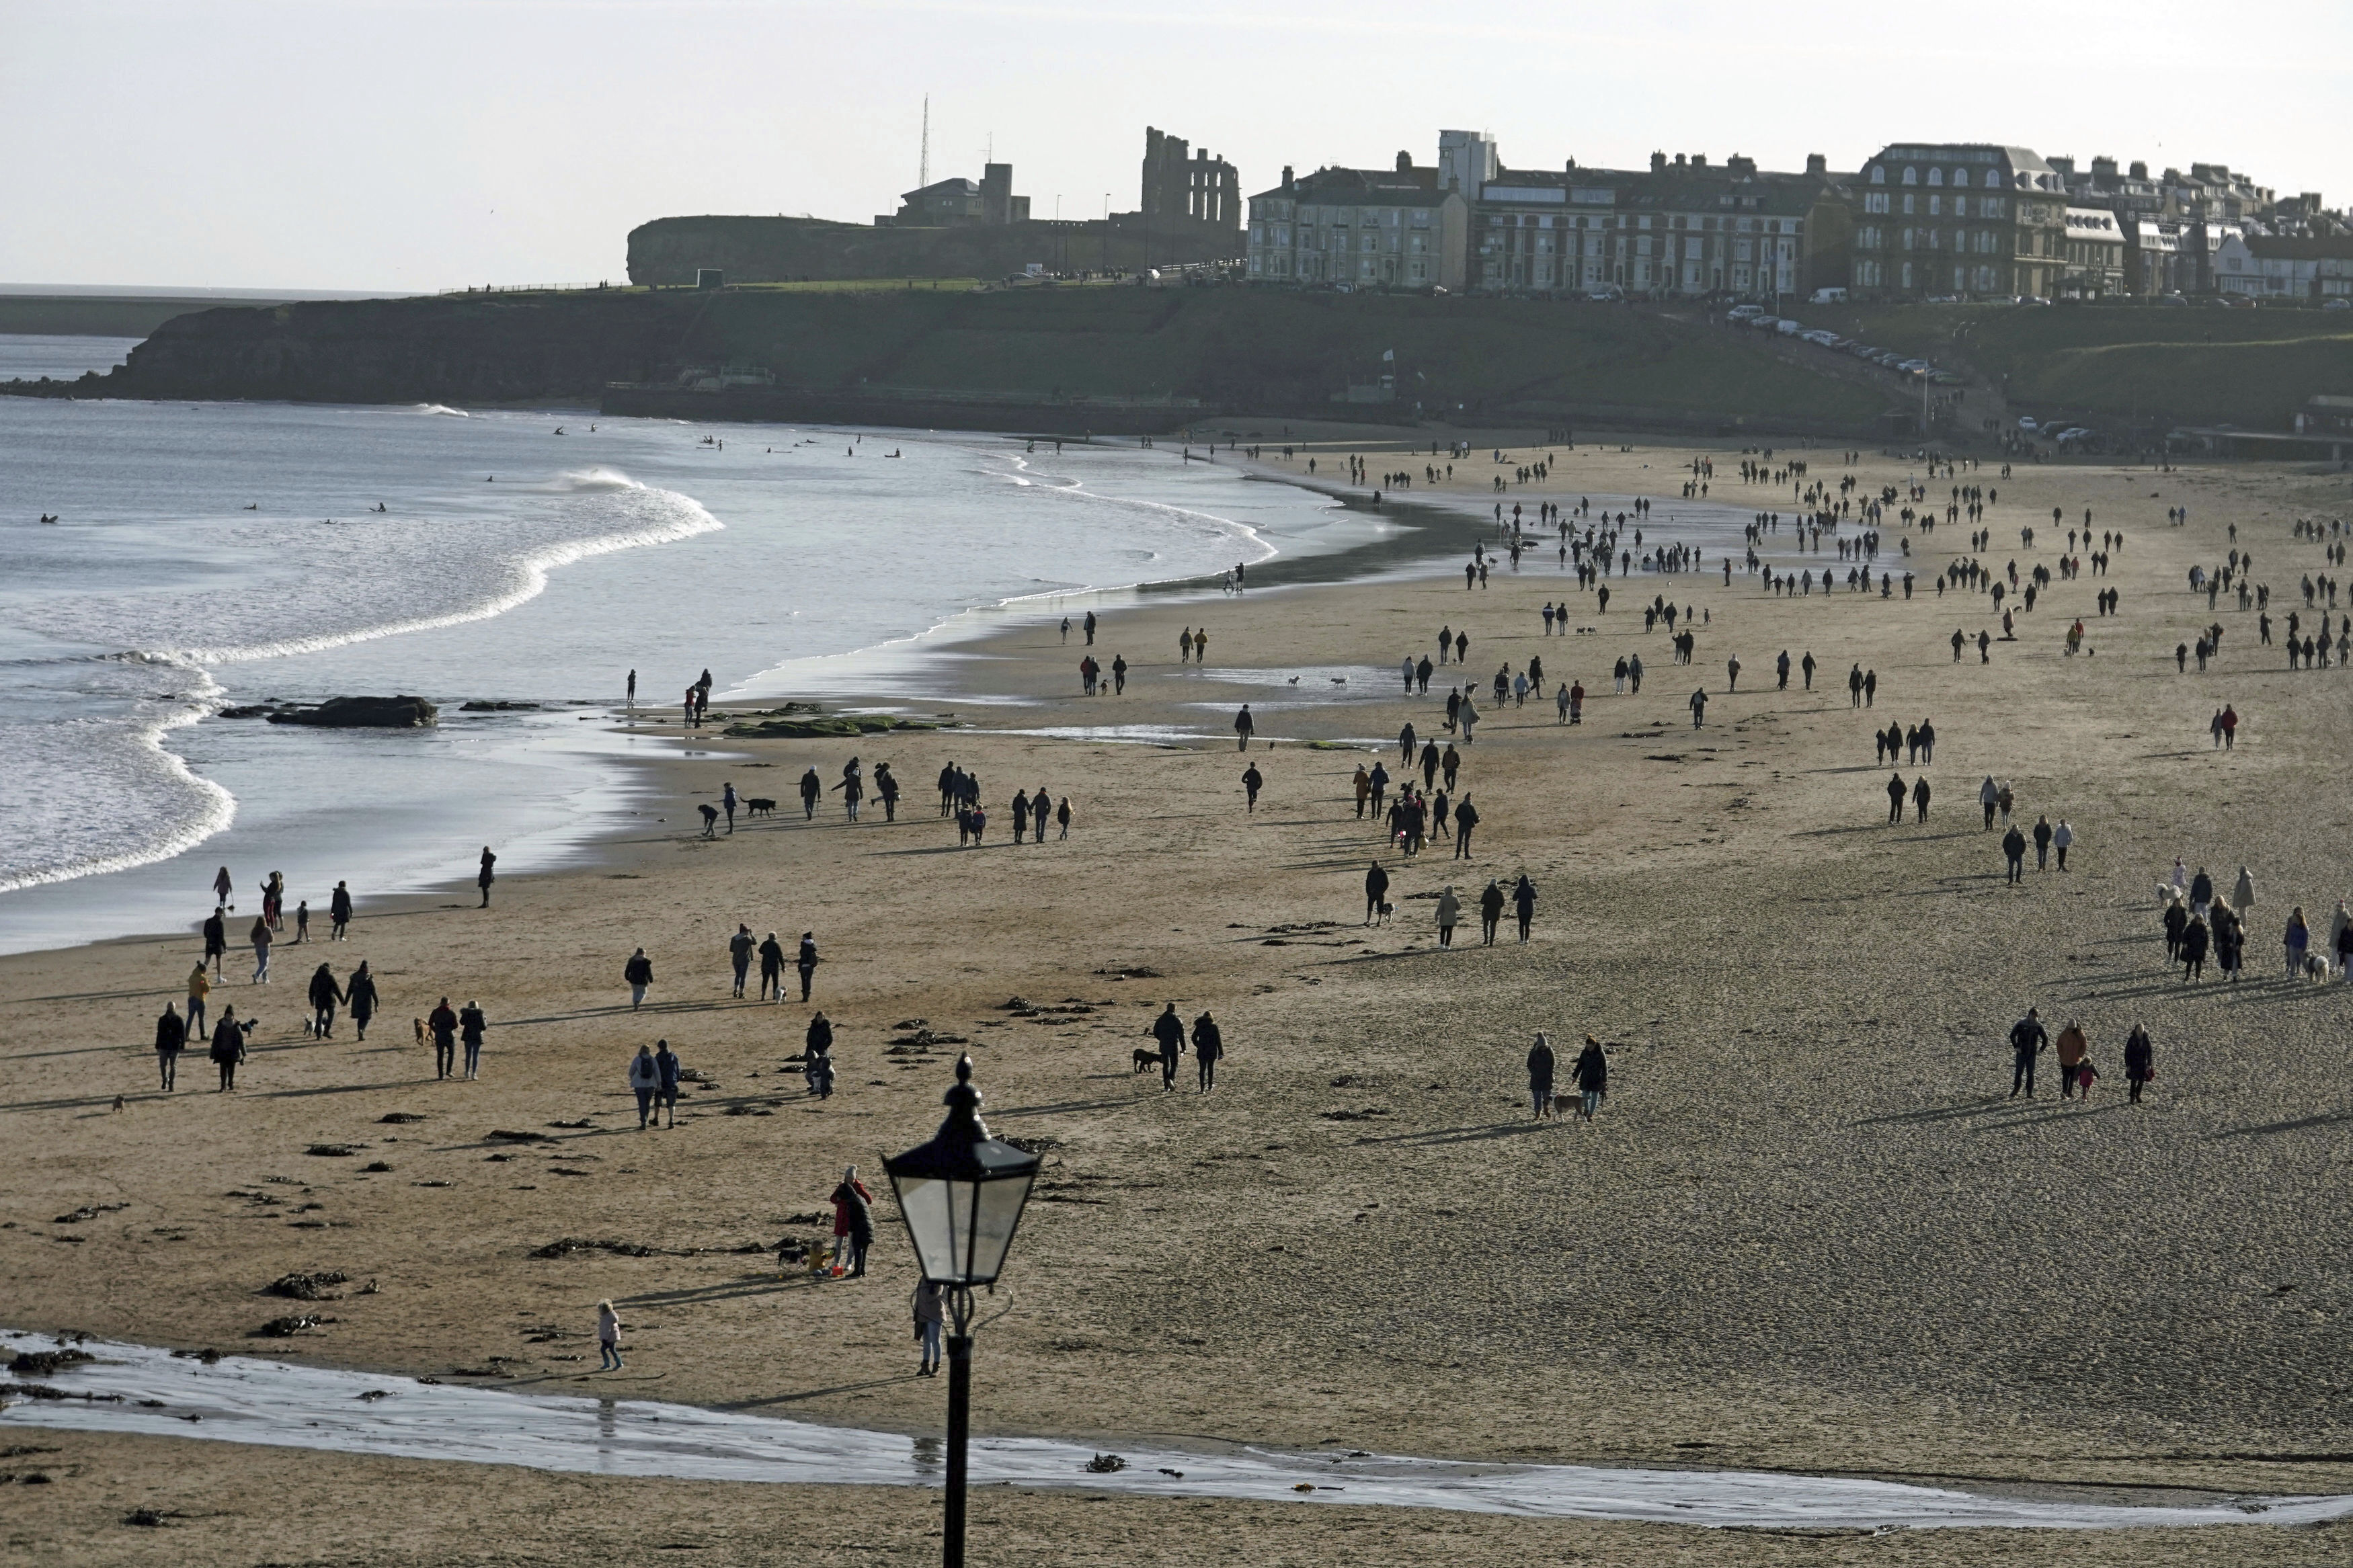 People walking on Tynemouth beach, as England continues a four week national lockdown to curb the spread of coronavirus, in Tyne and Wear, England, Sunday, Nov. 22, 2020. (Owen Humphreys/PA via AP)